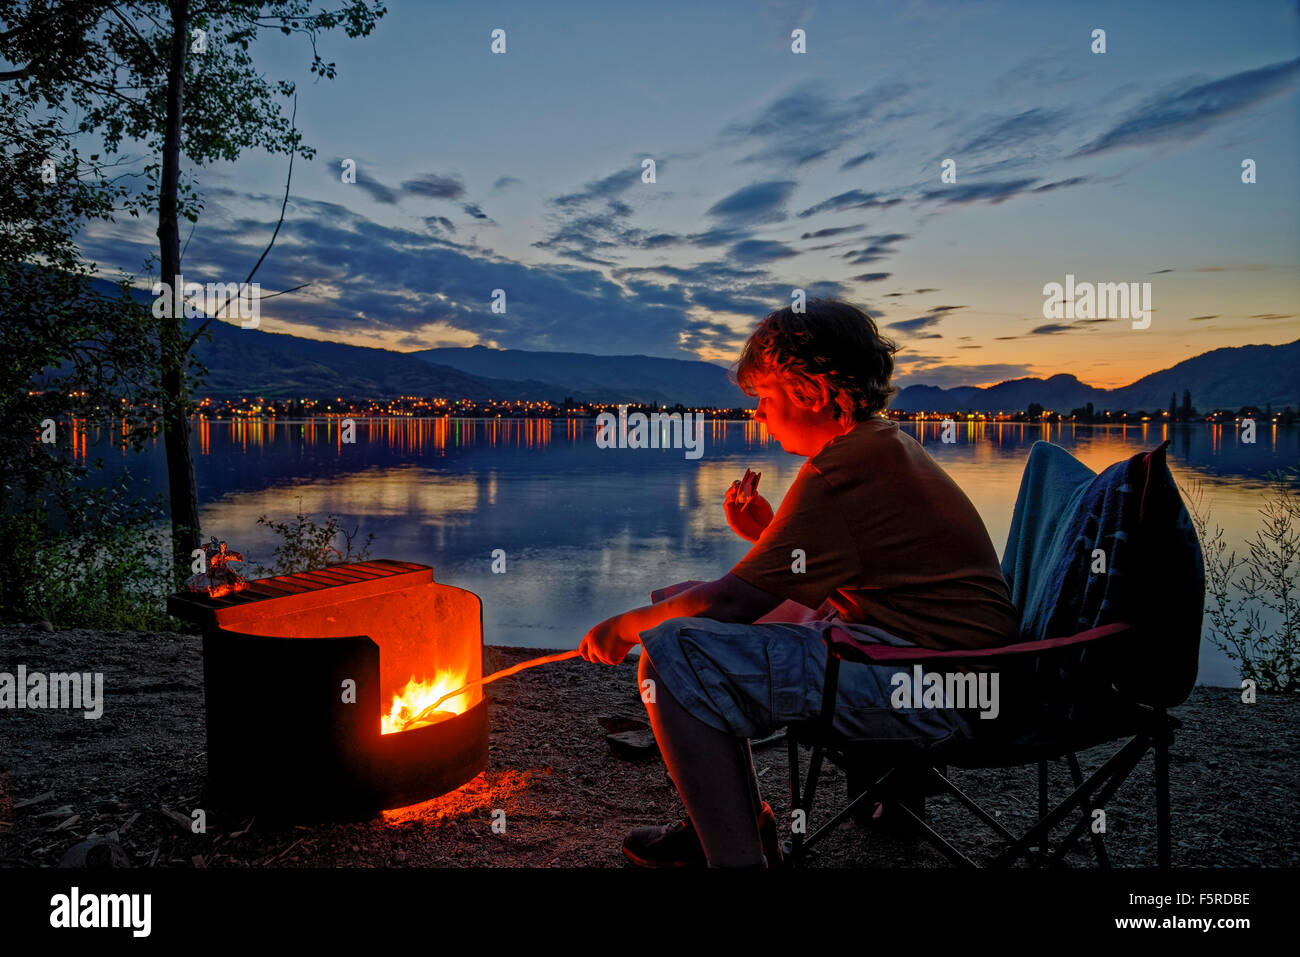 Boy roasts marshmallow in campfire at lakeshore campsite, Haynes Point Provincial Park, Osoyoos, British Columbia, - Stock Image